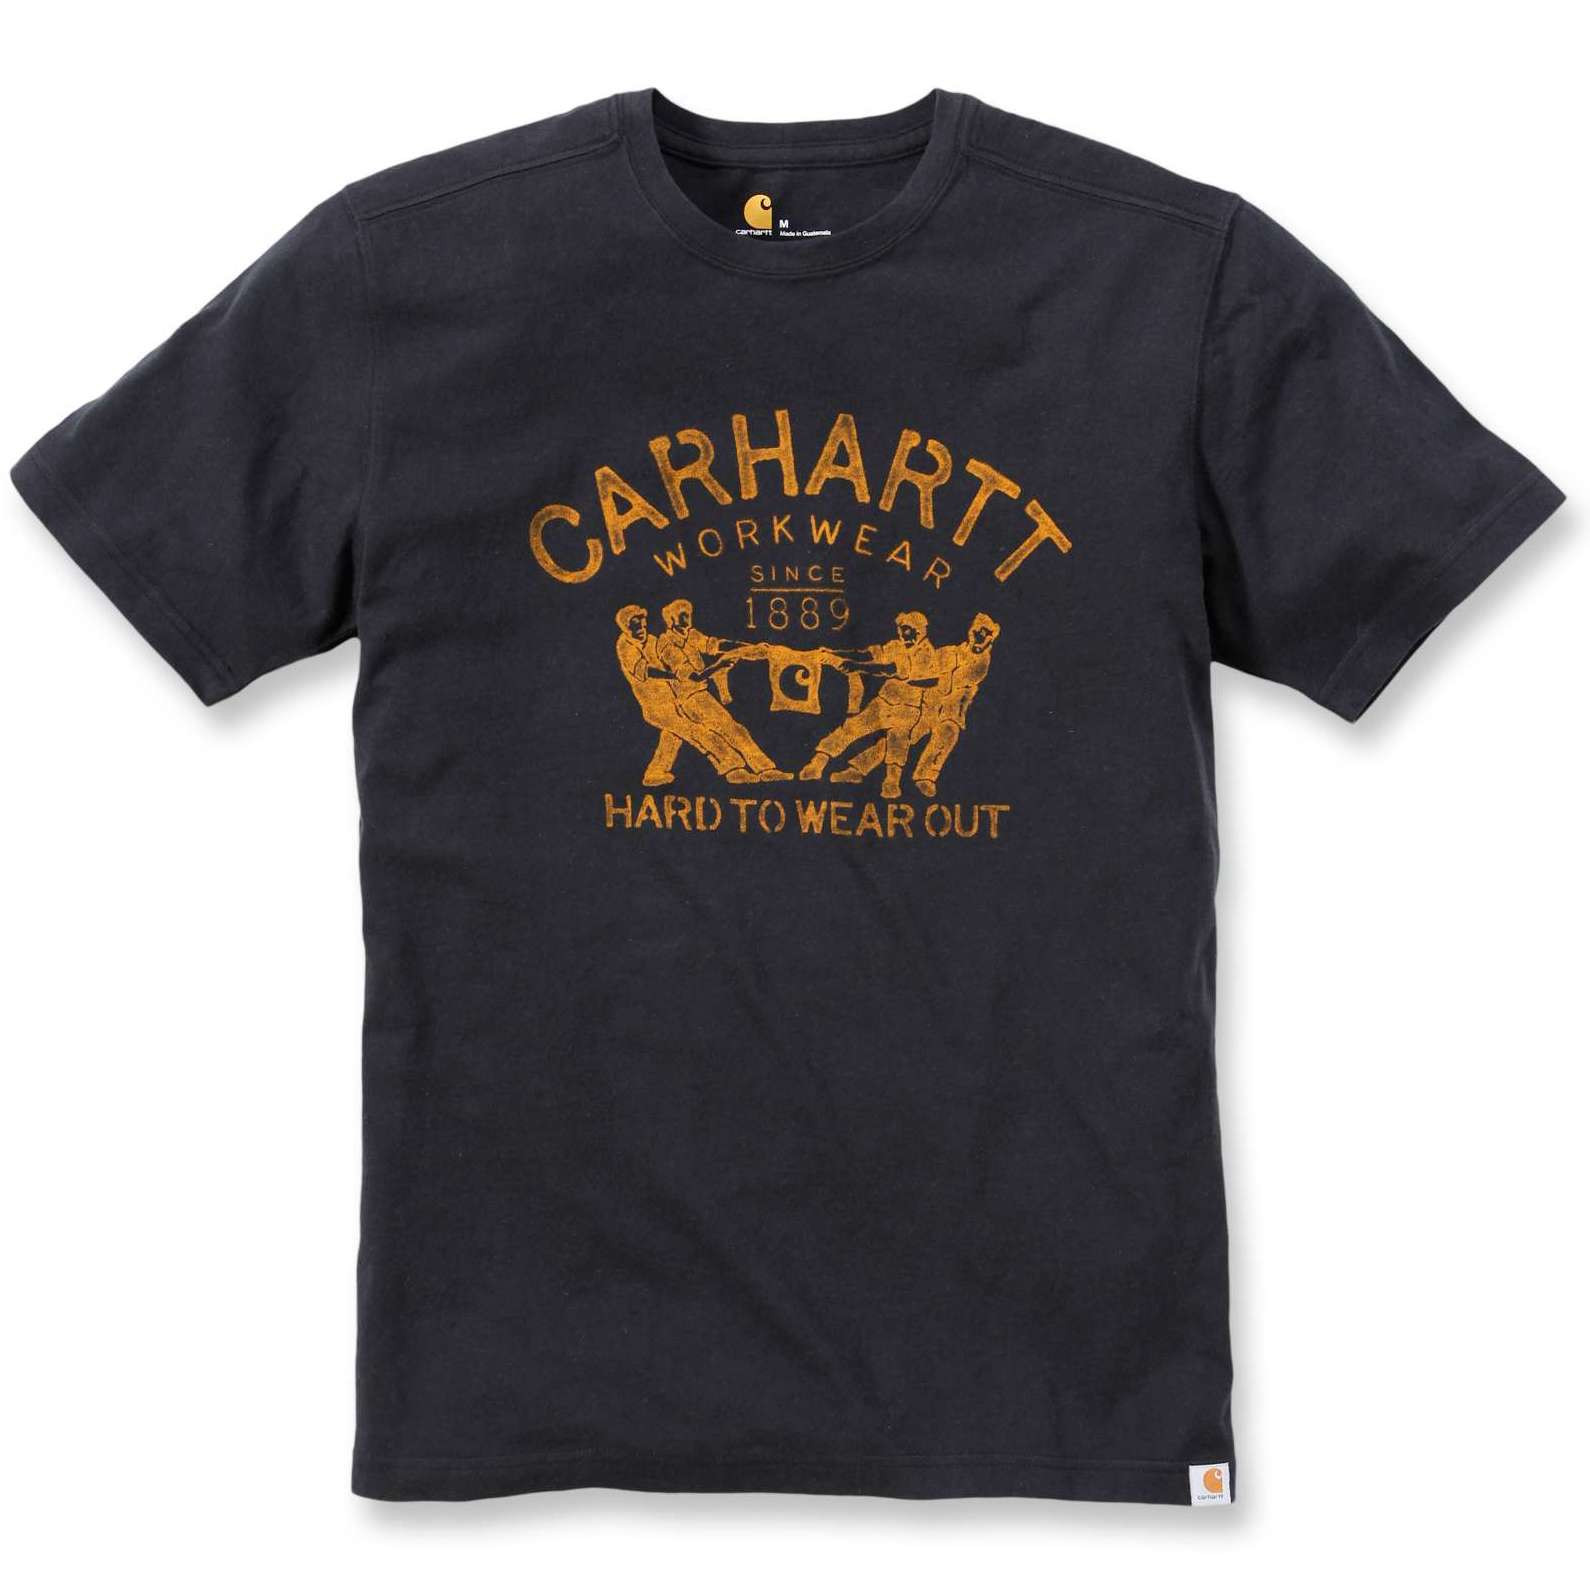 Футболка Carhartt Hard To Wear Out Graphic T-Shirt S/S - 102097 (Black, XS)